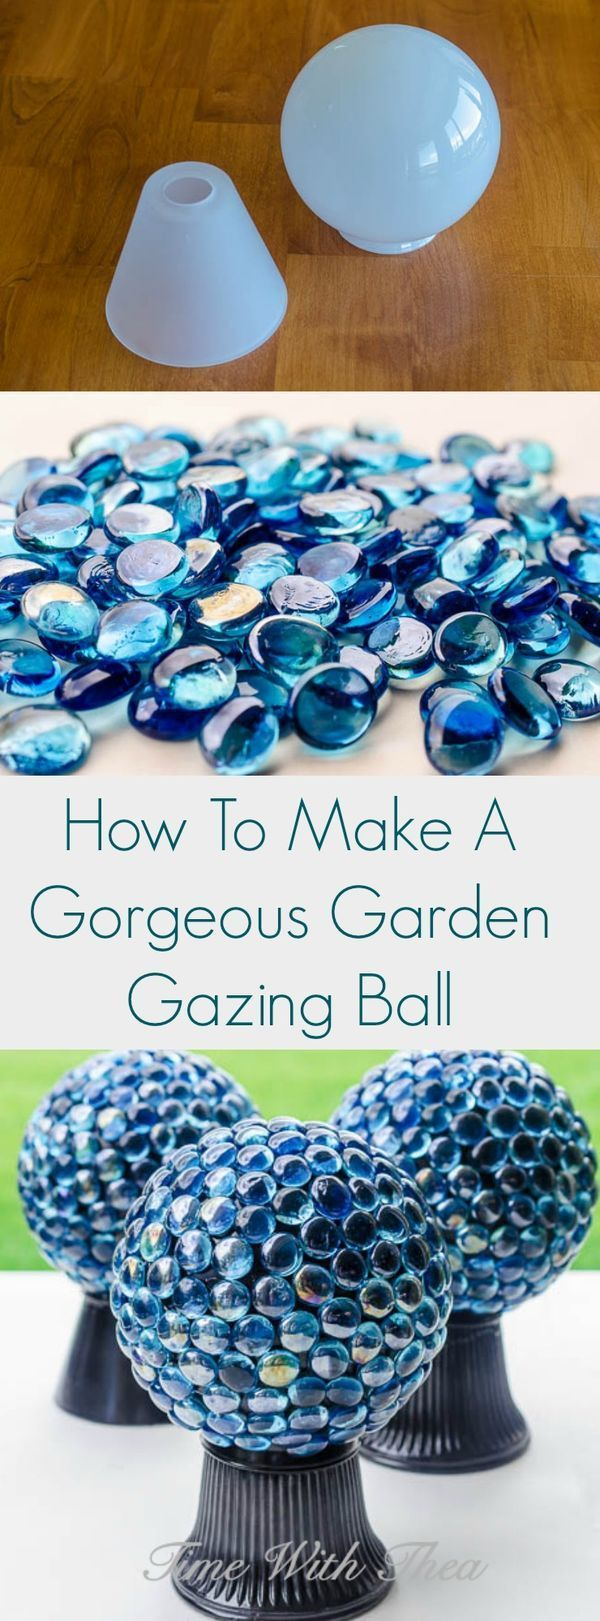 Make this gorgeous garden gazing ball to add to your garden decor using items purchased at the thrift store and dollar store! It